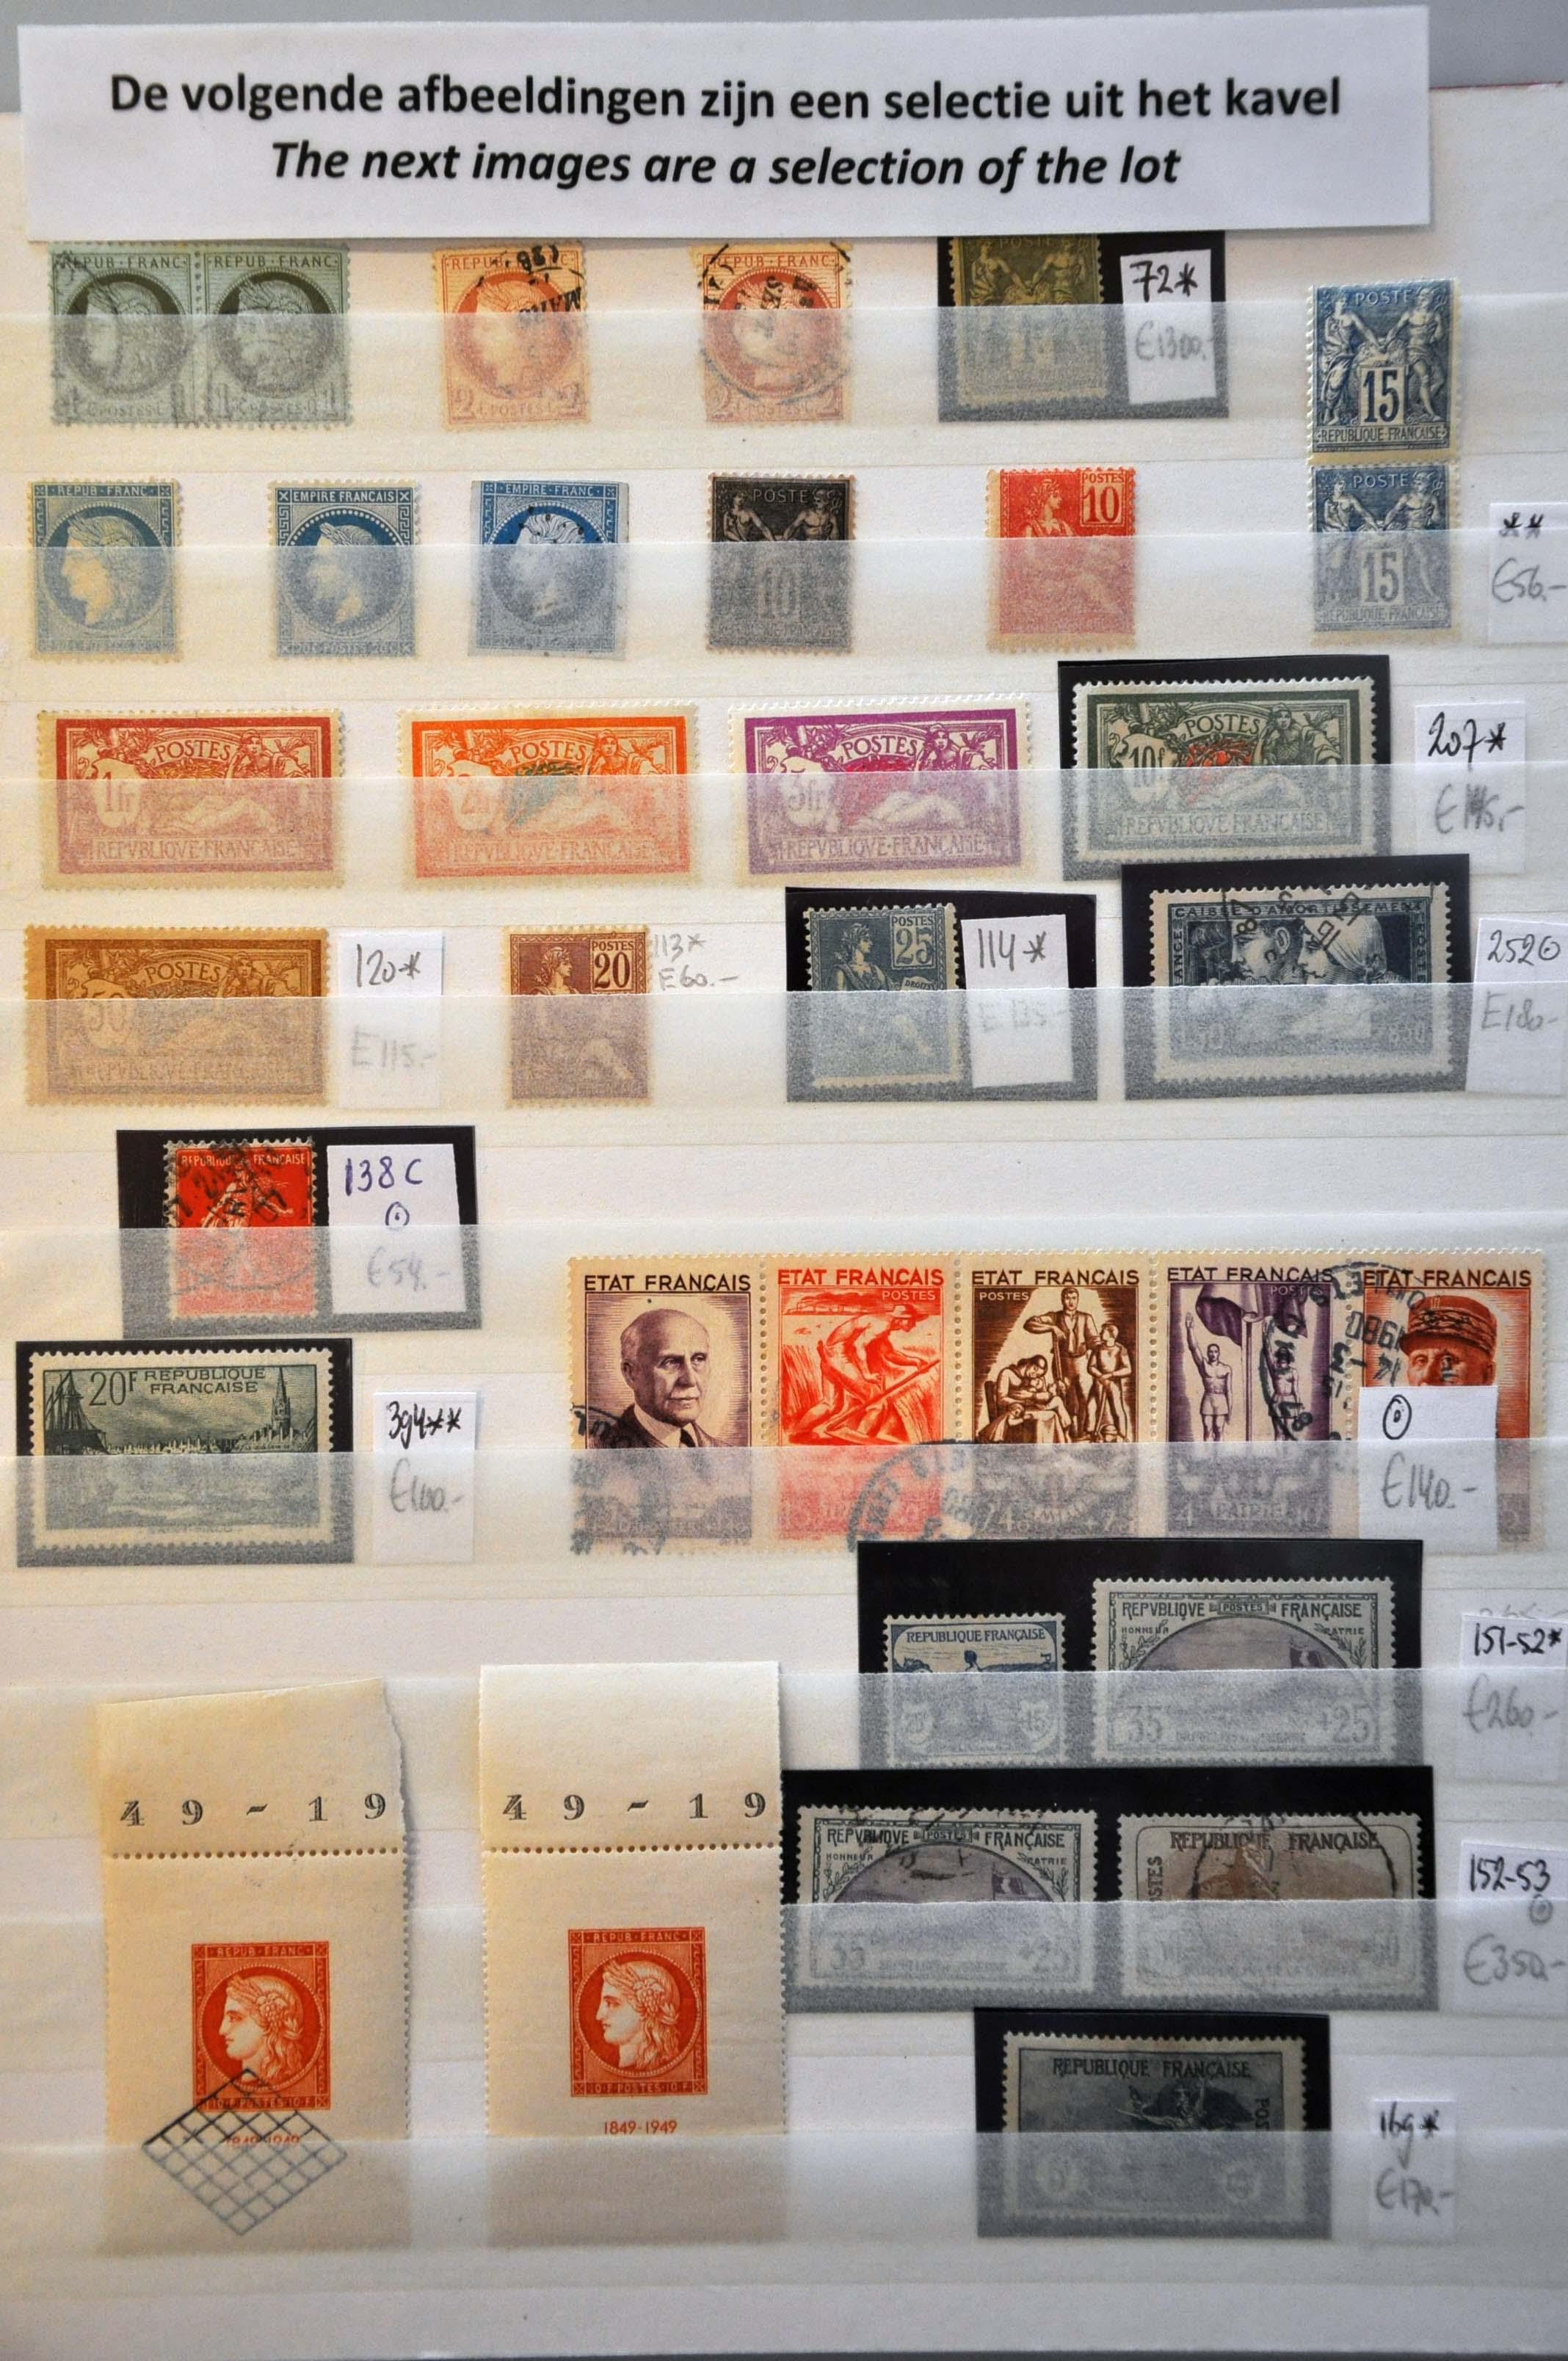 Lot 535 - France and former colonies France -  Corinphila Veilingen Auction 244 -Netherlands and former colonies, WW2 Postal History, Bosnia, German and British colonies, Egypt. - Day 1